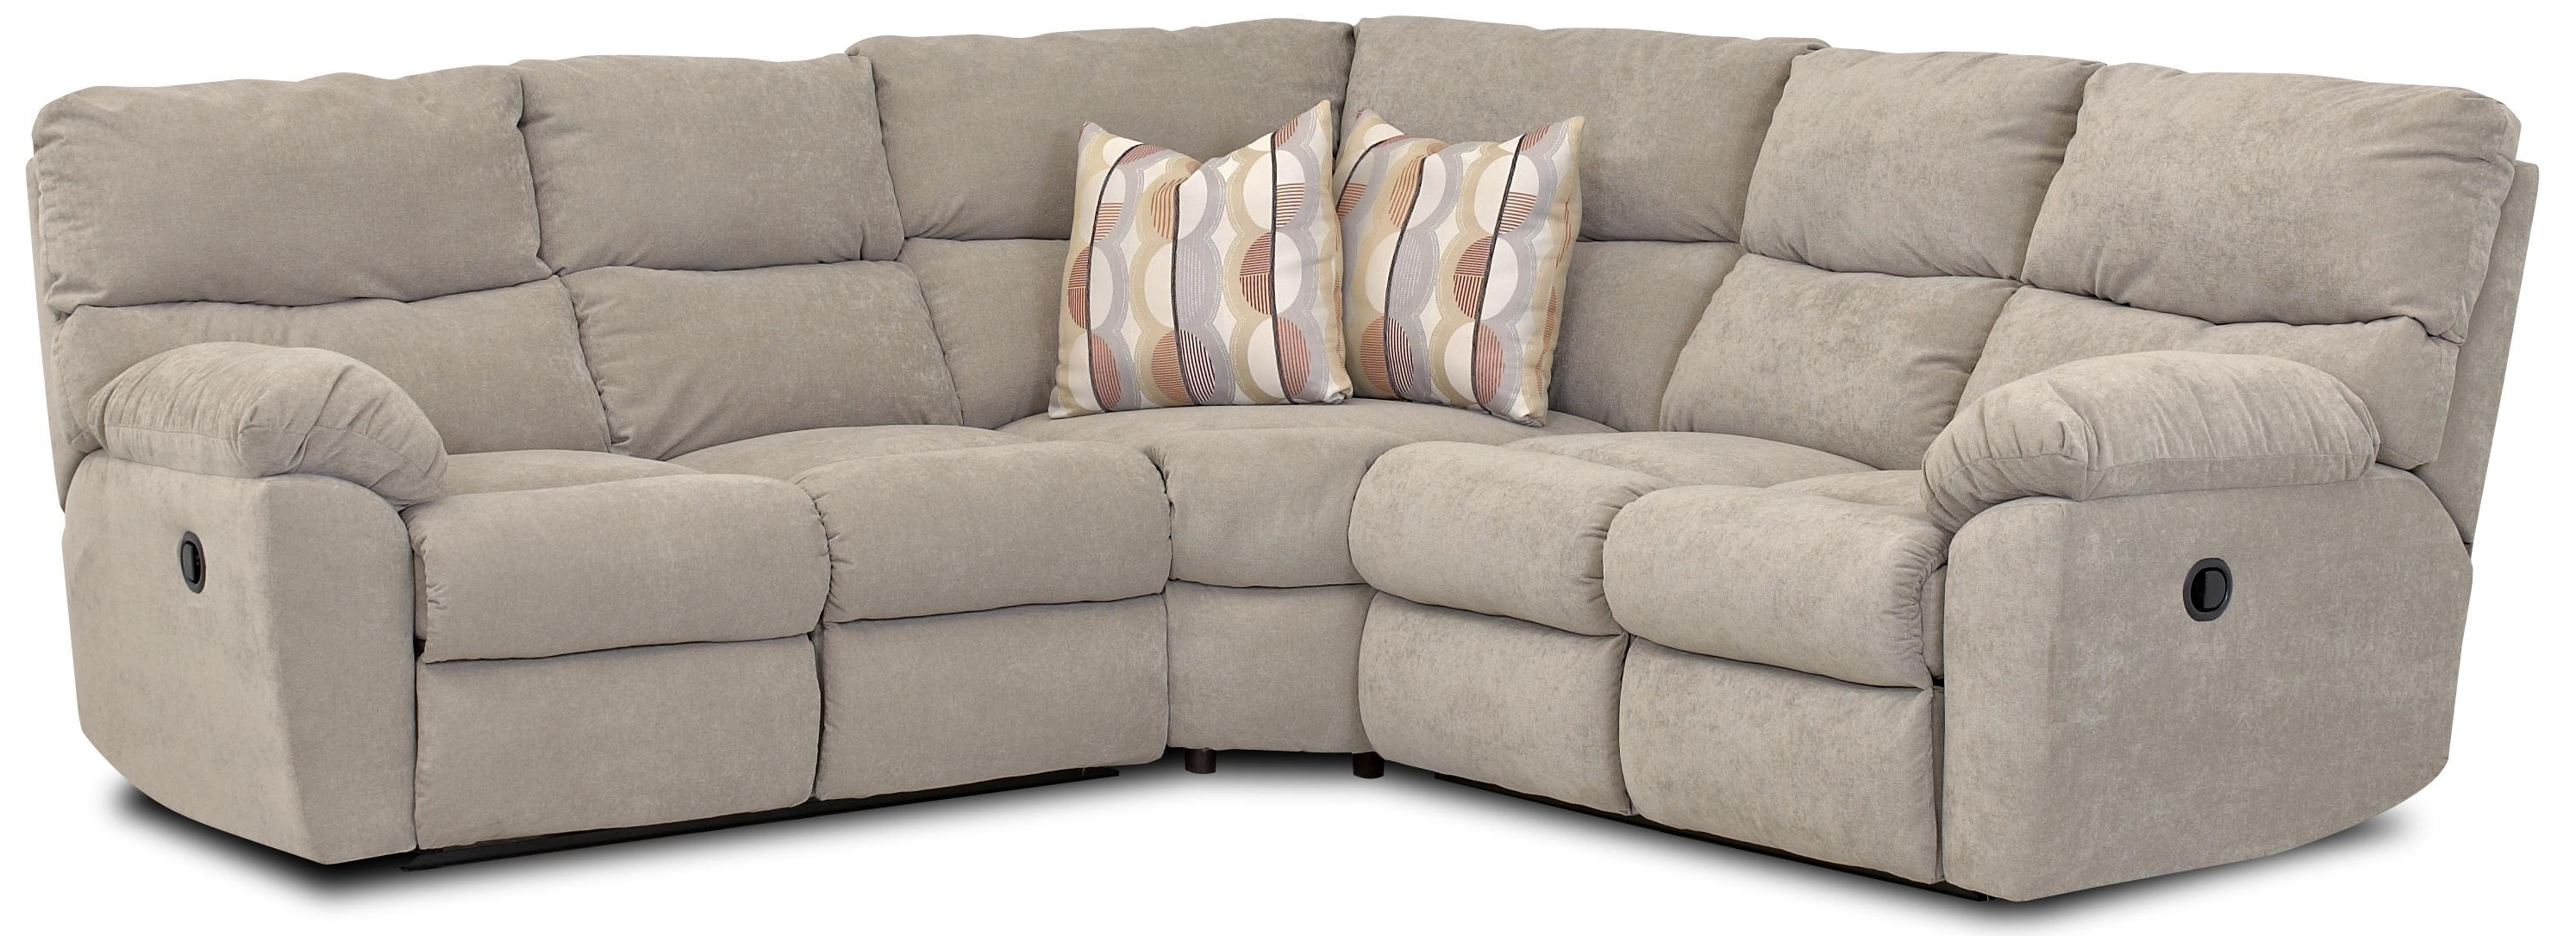 Klaussner Odessa Casual Power Reclining Sectional With Accent For Latest Johnny Janosik Sectional Sofas (View 14 of 20)